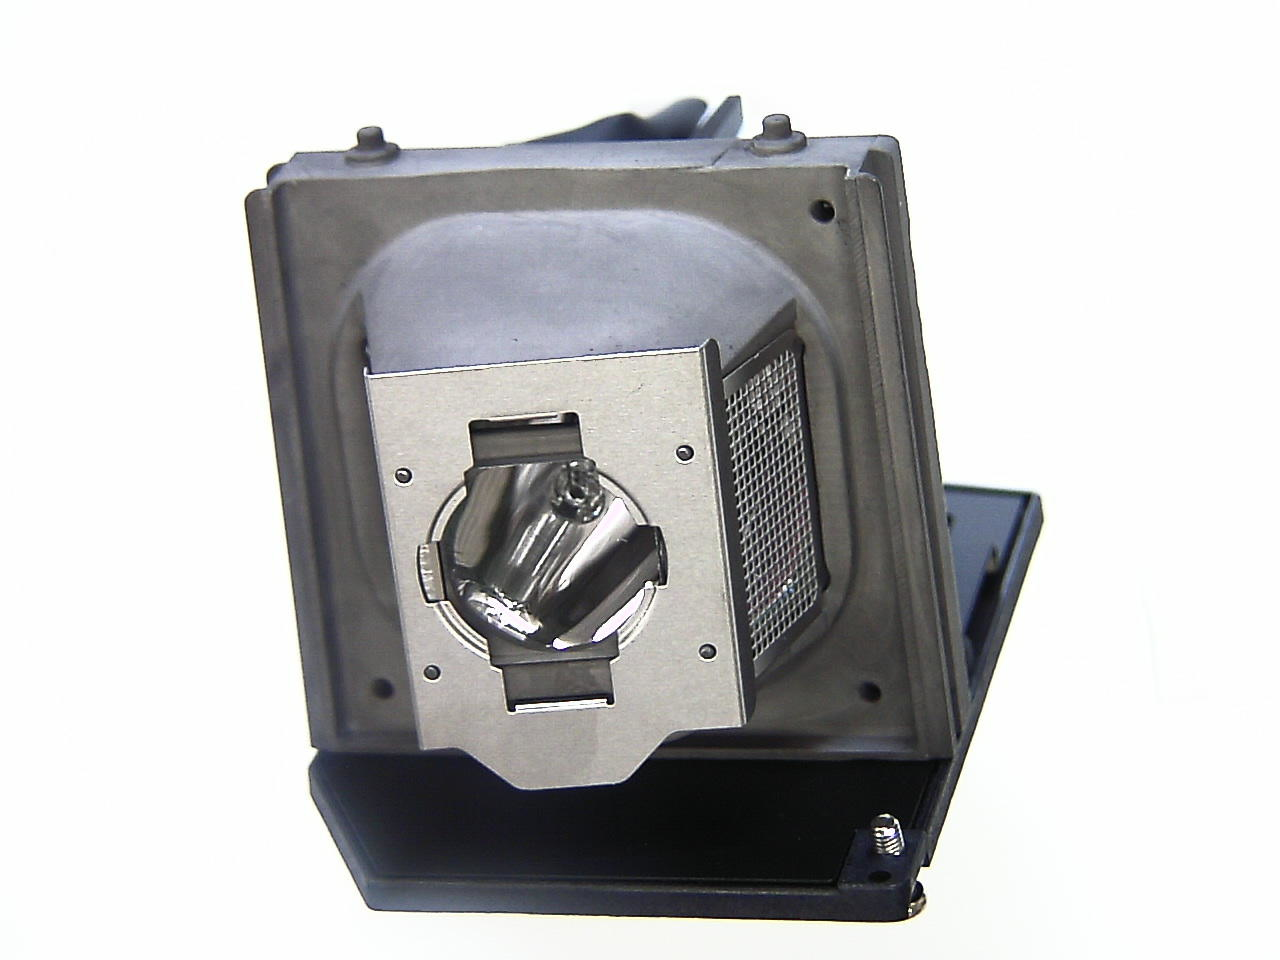 V7 VPL1329-1E PROJECTOR LAMP FOR SELECTED PROJECTORS BY DELL